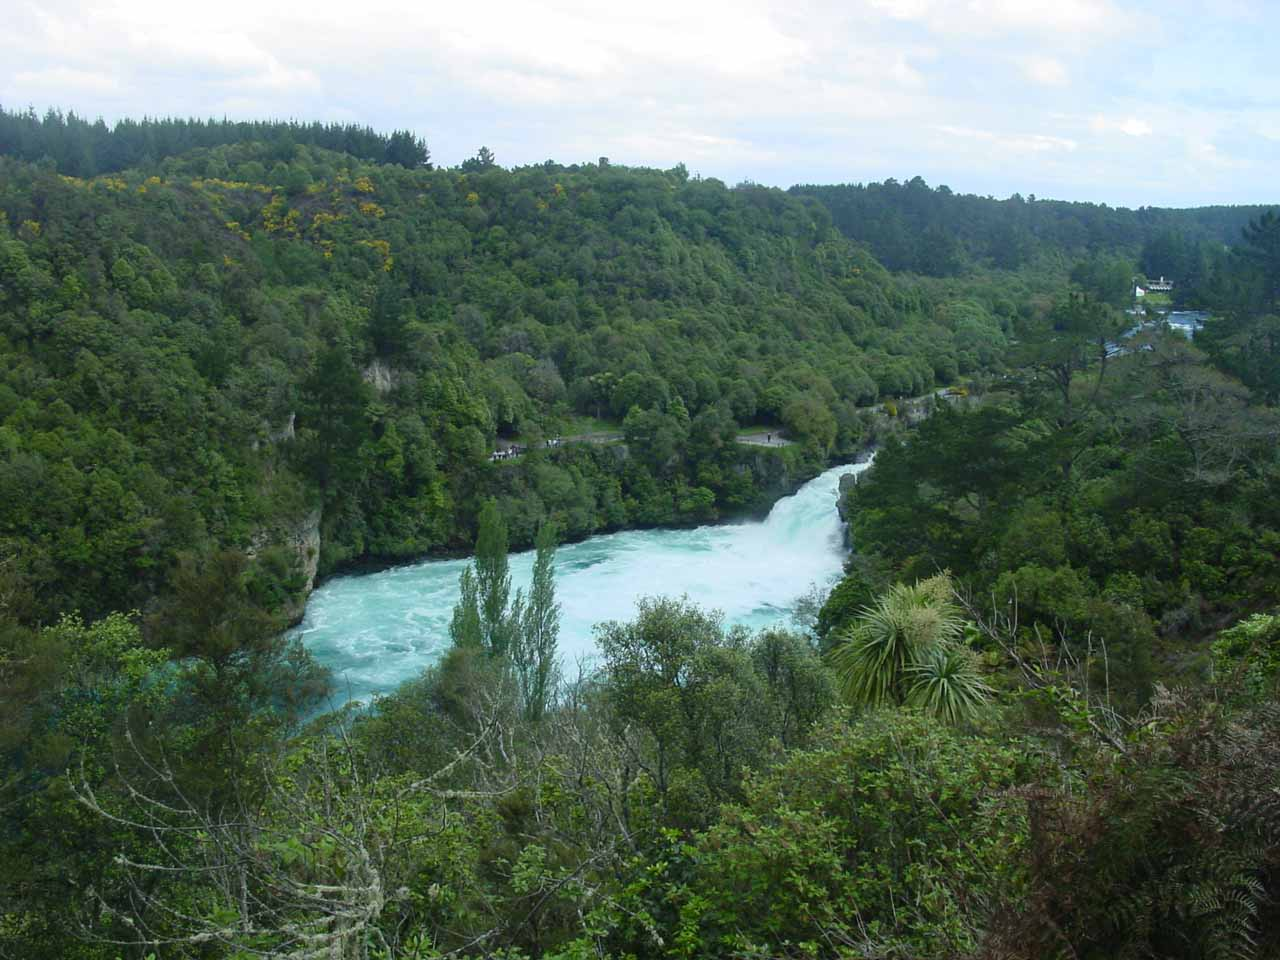 Last look at Huka Falls from an alternate lookout across the river